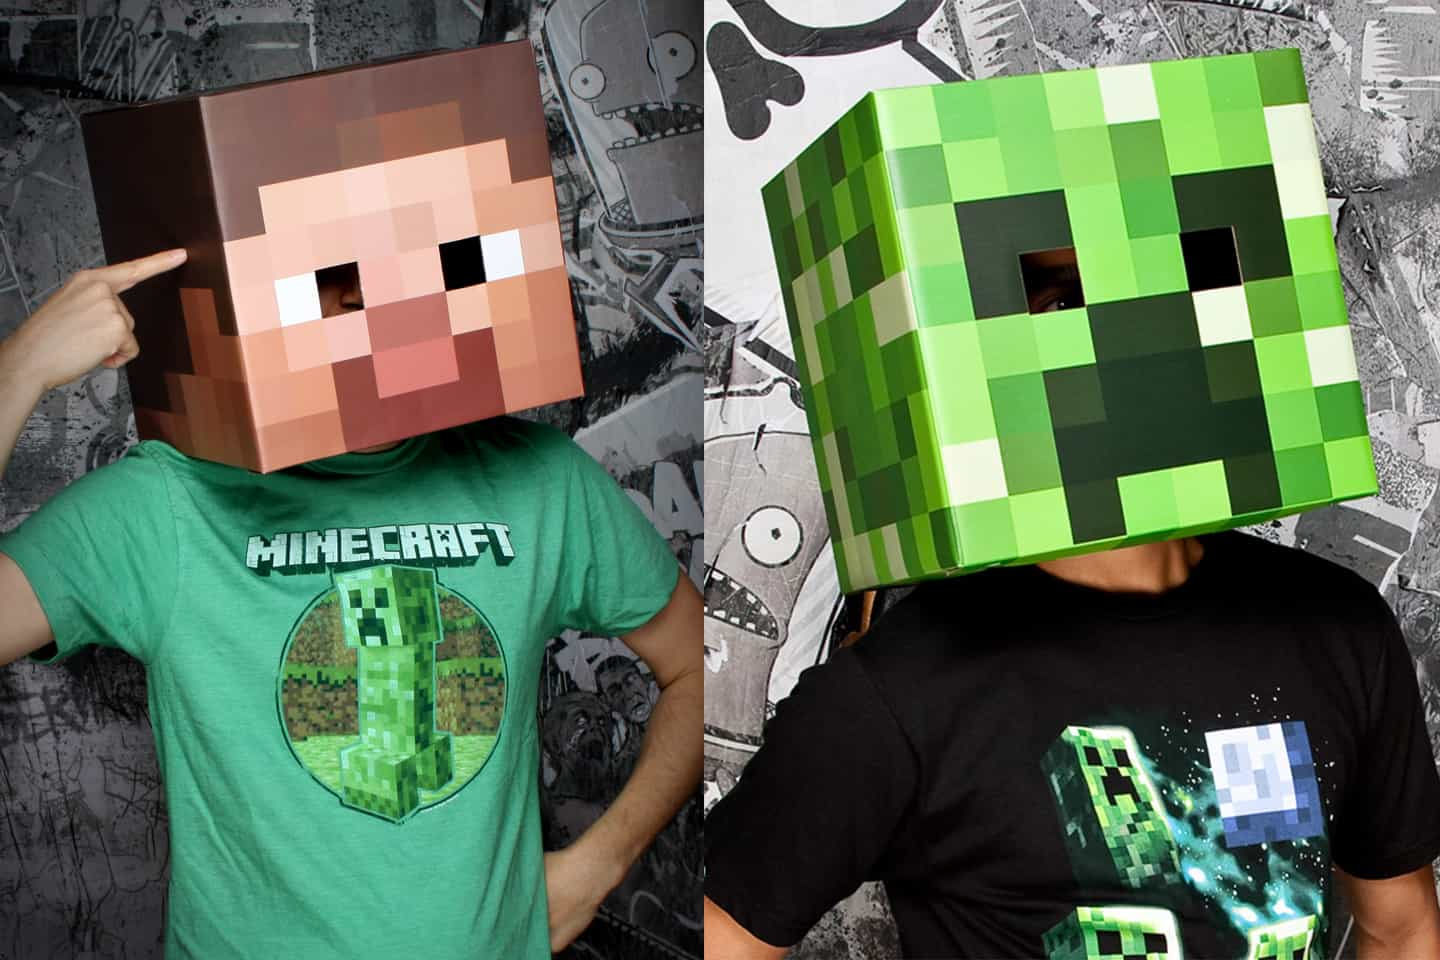 Don't judge a Minecraft box by its price cover.